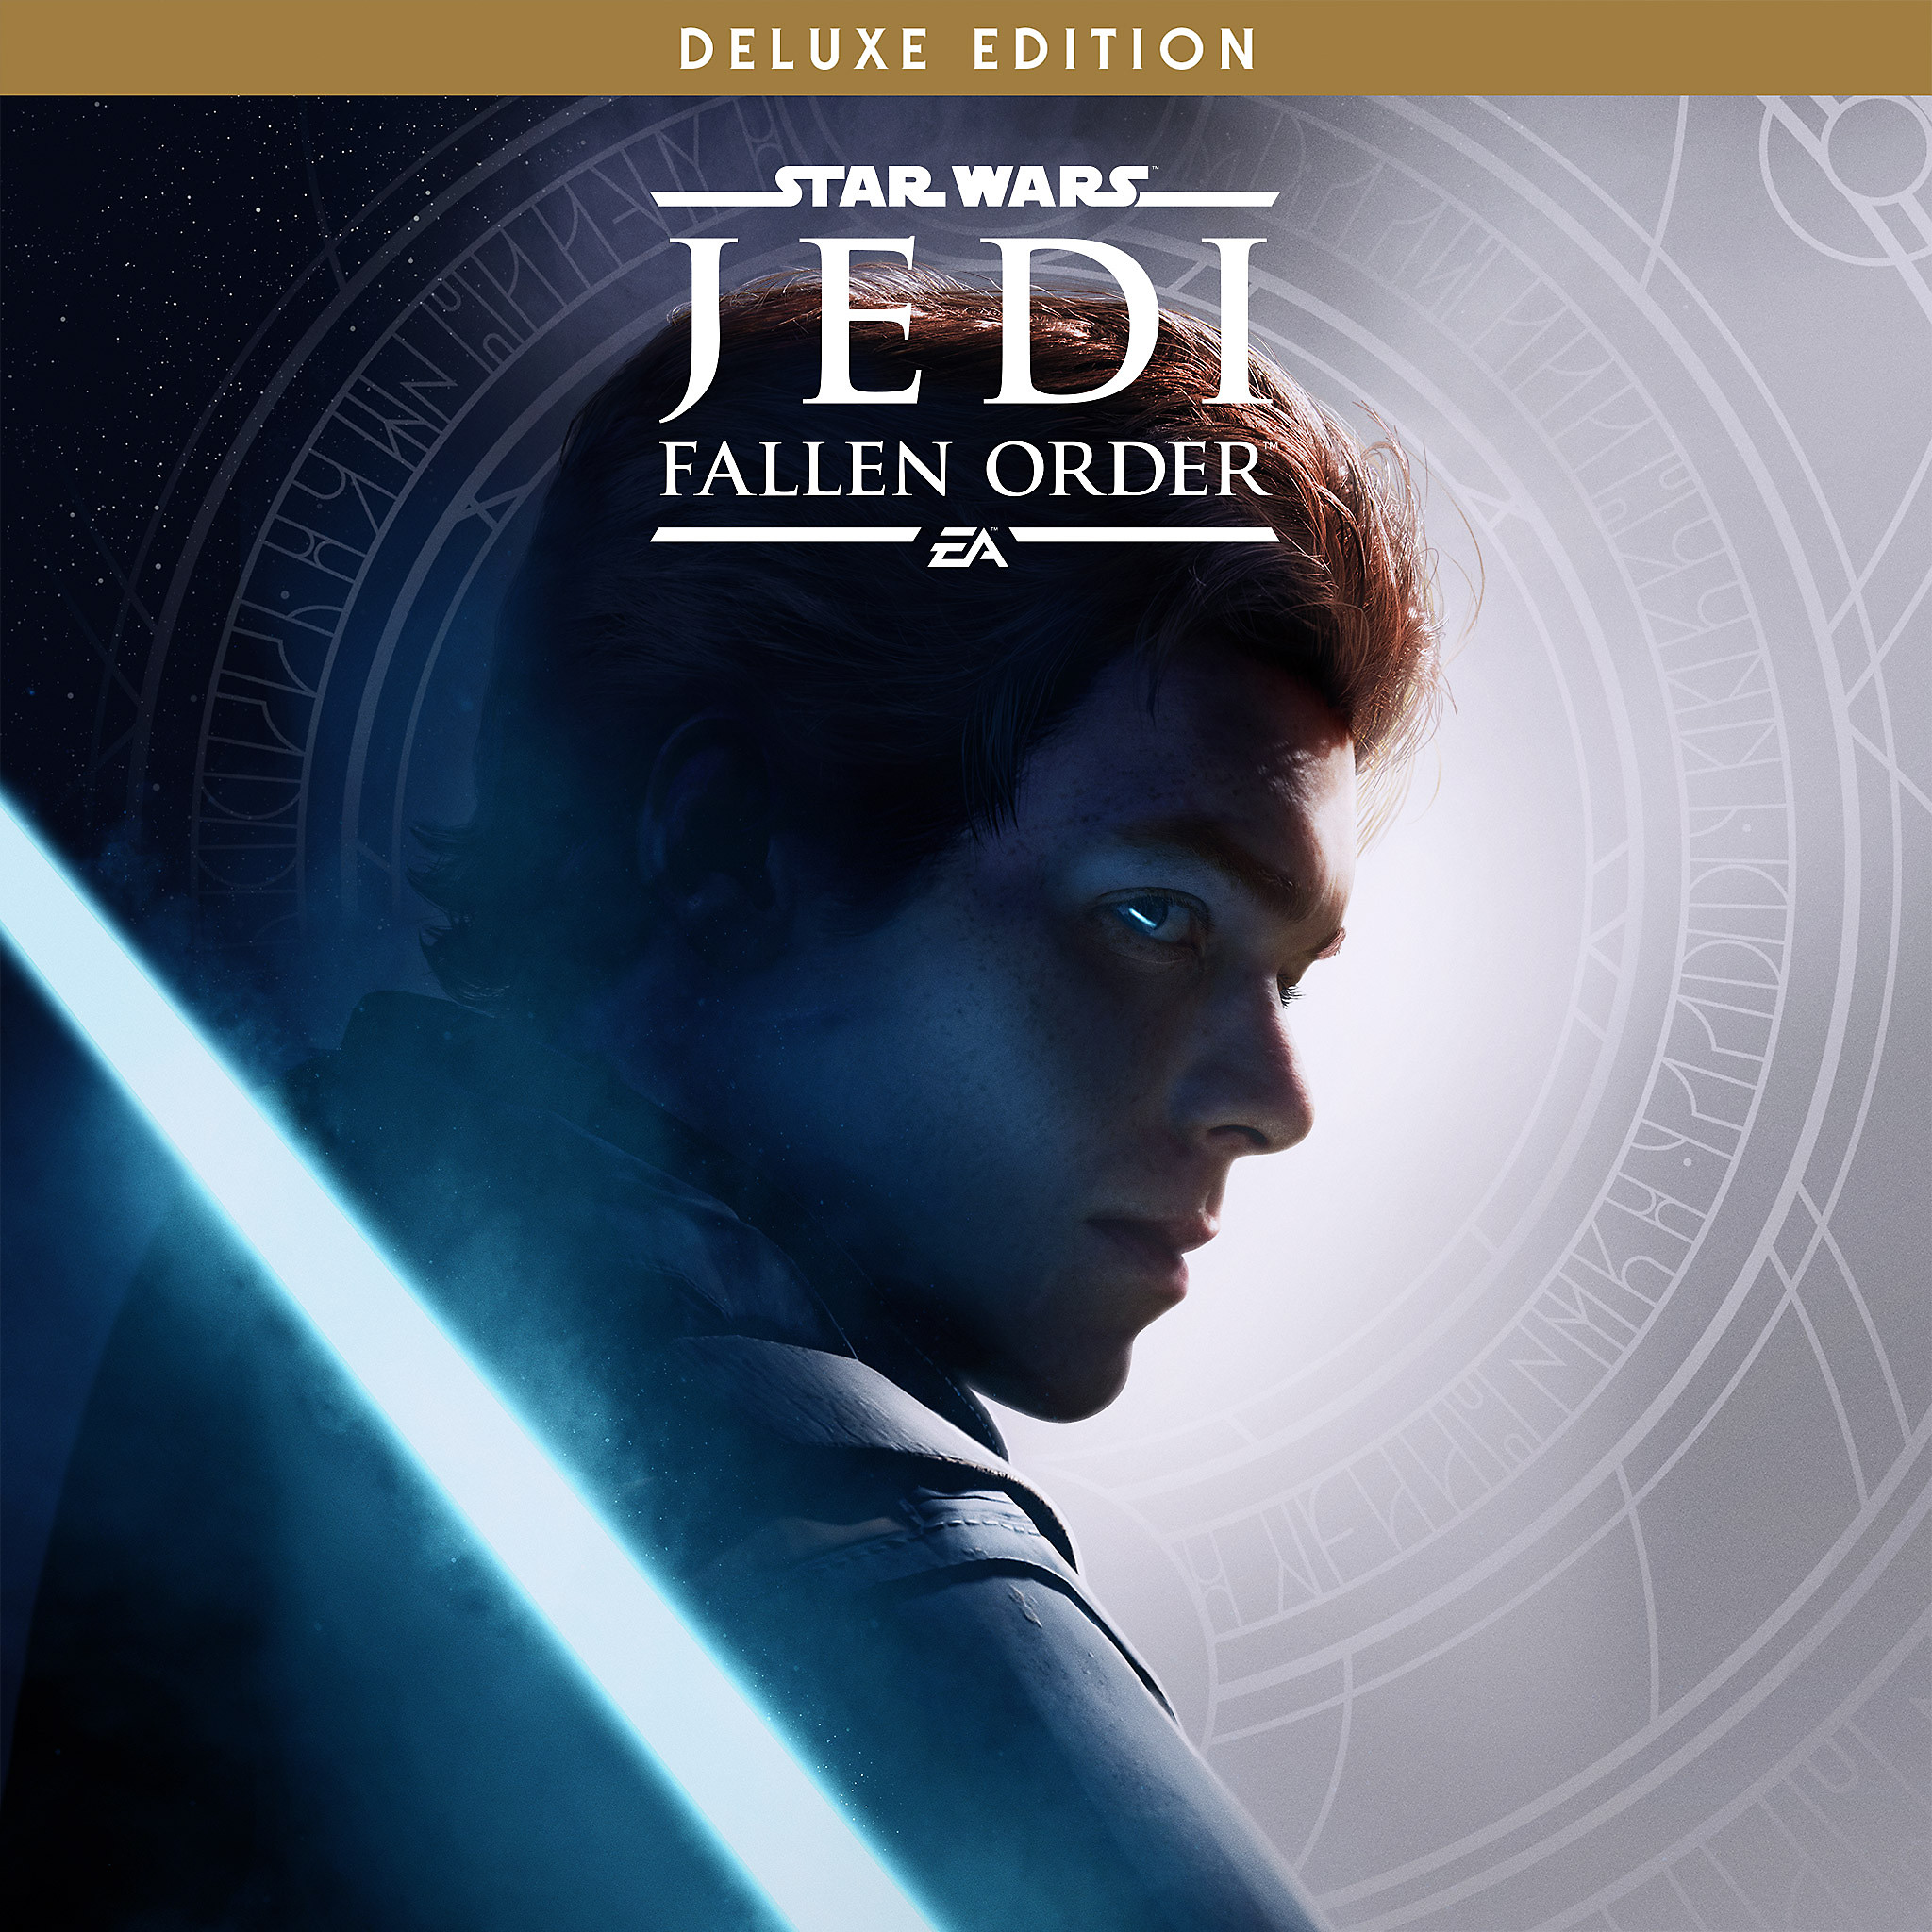 Star Wars Jedi Fallen Order - Deluxe Edition Art